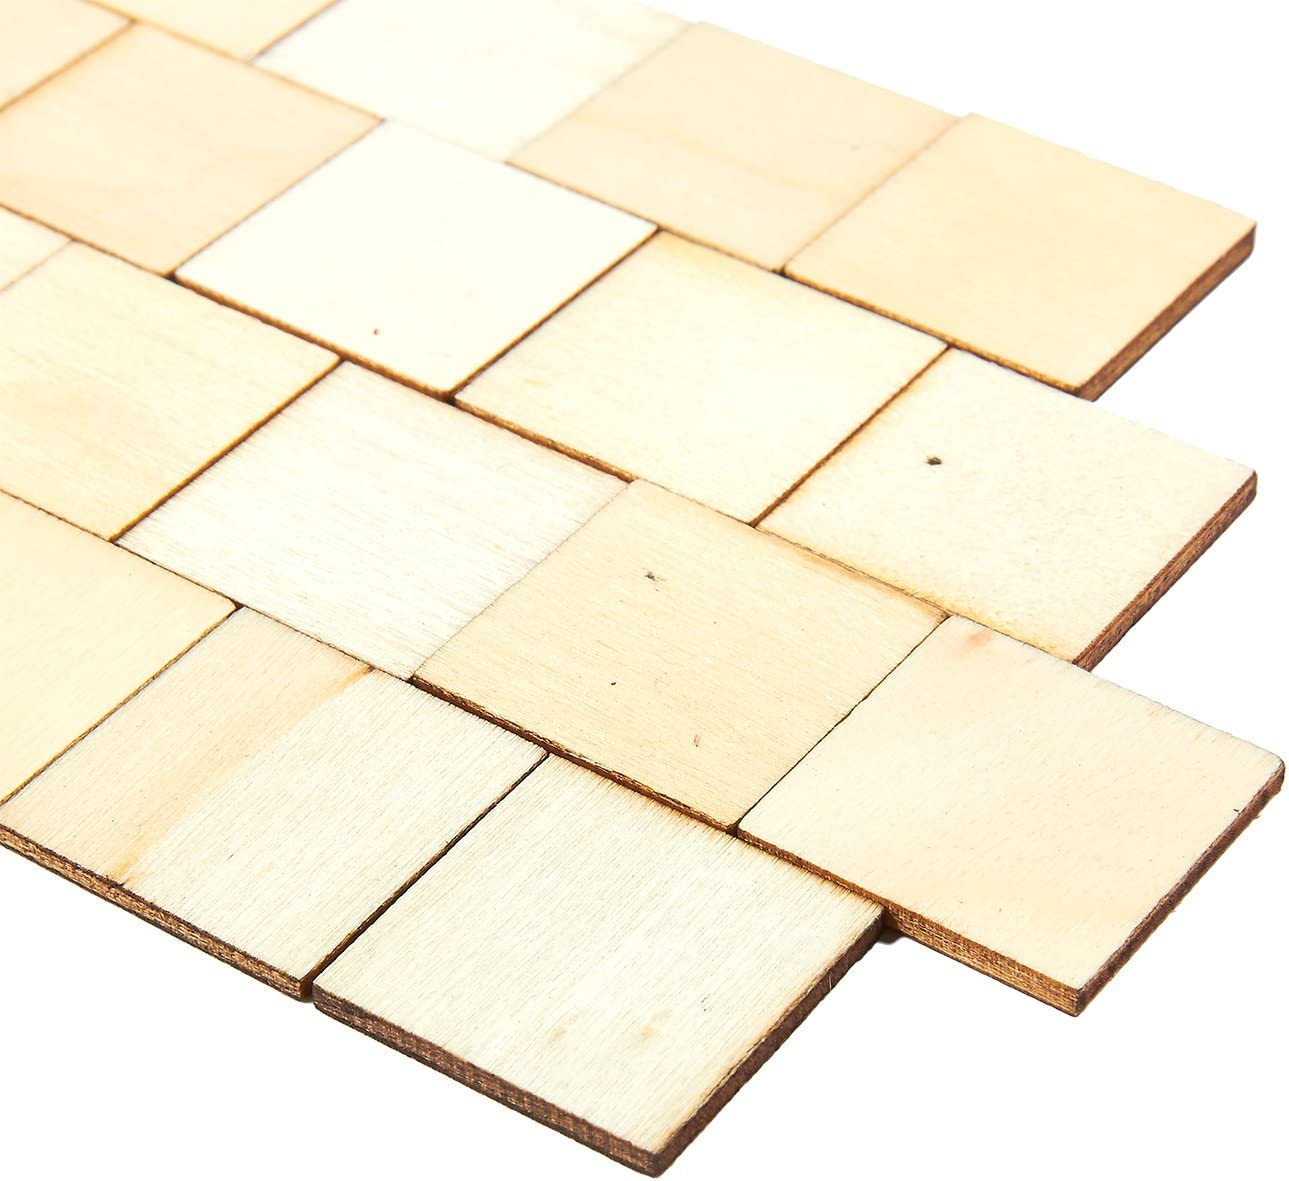 Natural Rustic Craft Wood for Home Decoration 100-Pack Wooden Squares Cutout Tiles 1 x 1 inches DIY Supplies Unfinished Wood Pieces